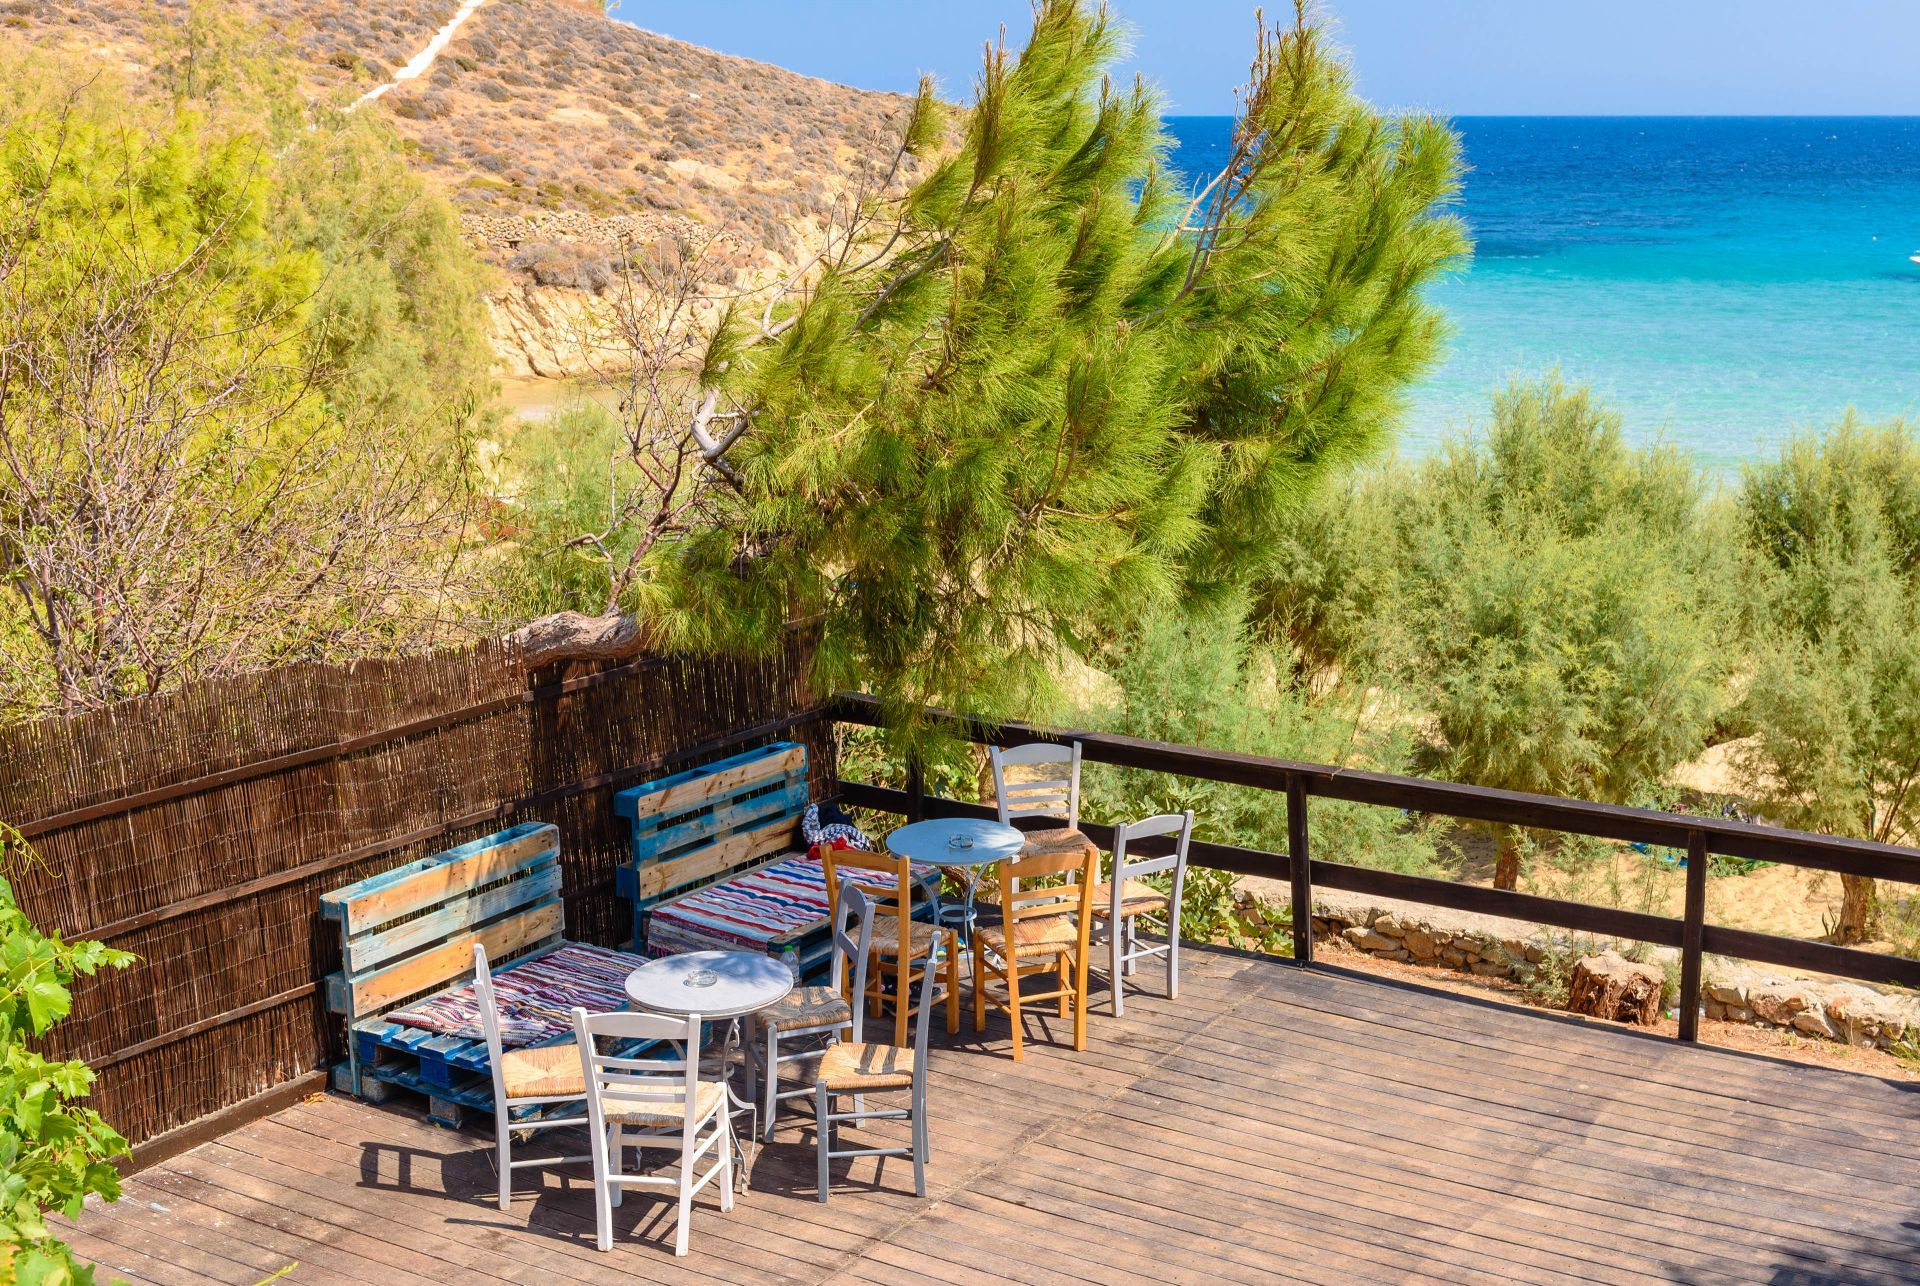 Cafes in Serifos